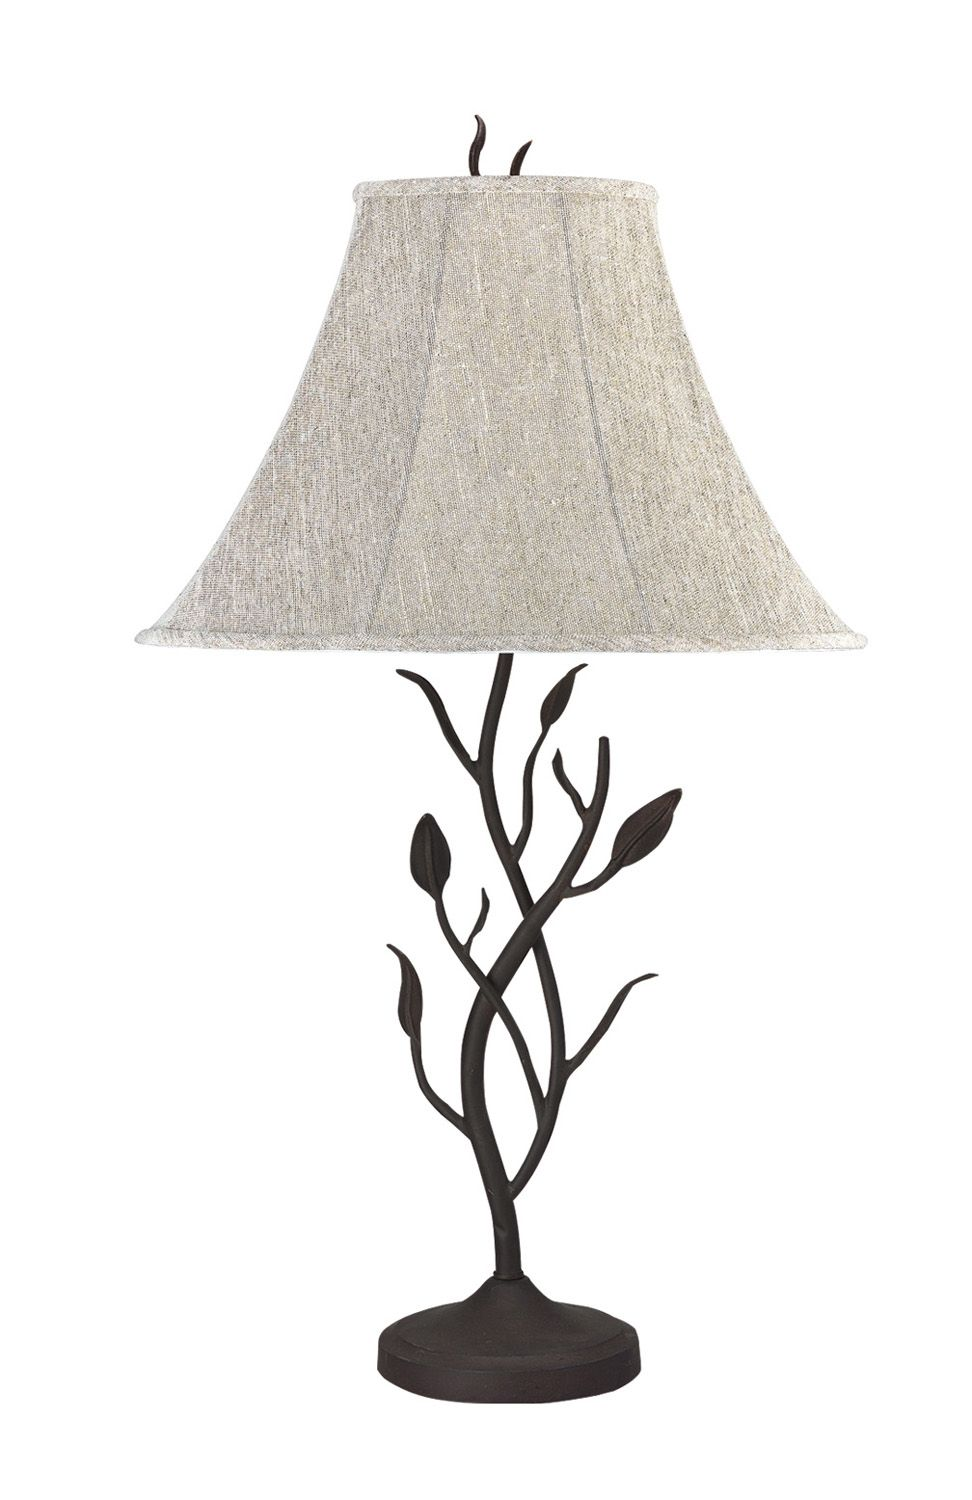 Hand Forged Table Lamp From Cal Lighting Available At Lightingbydesign Cal Lighting Metal Table Lamps Table Lamp